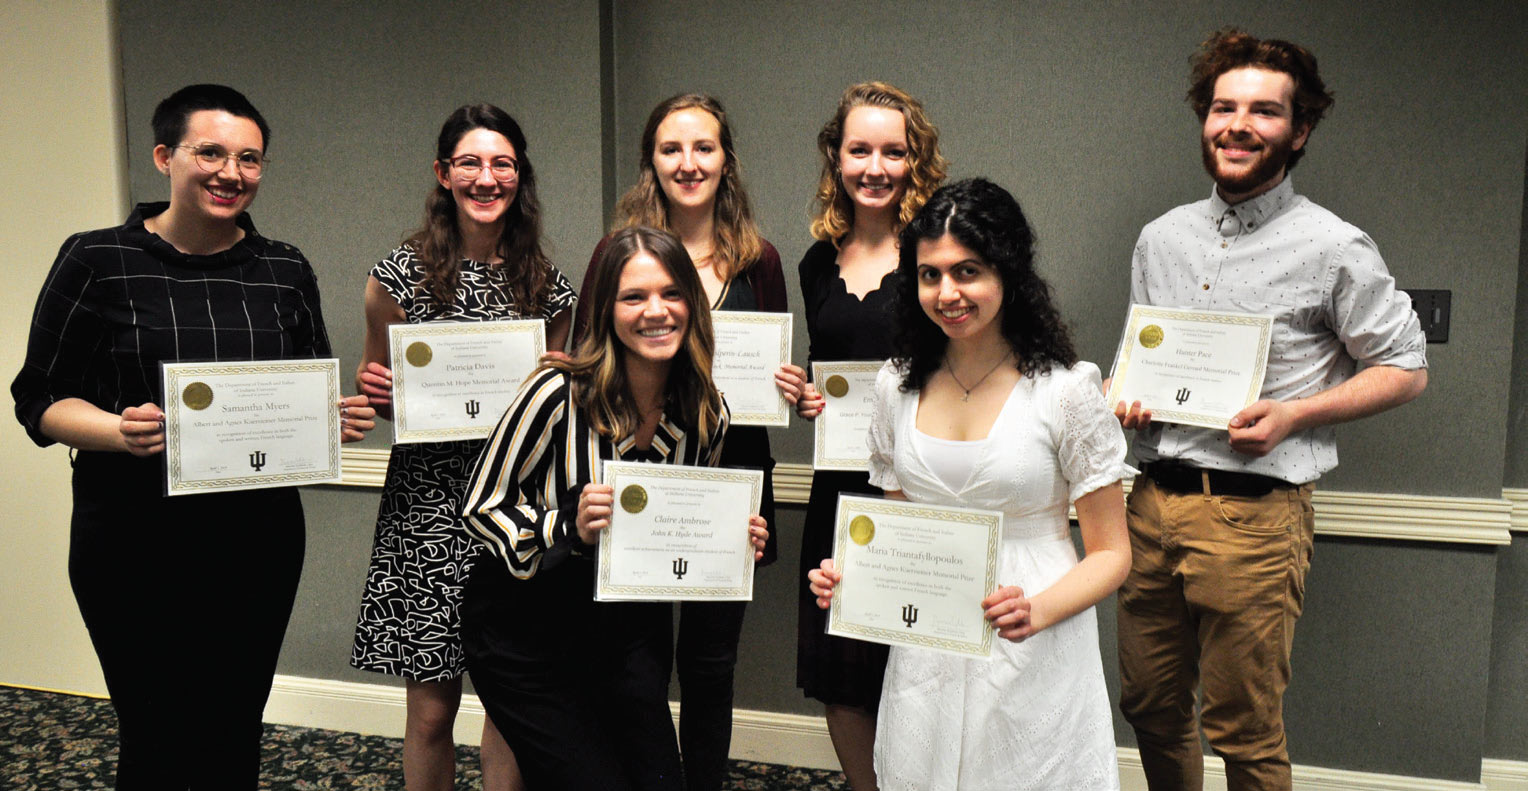 Undergraduate award recipients in French: Samantha Myers, Patricia Davis, Claire Ambrose, Rebecca Hailperin-Lausch, Emma Coates, Maria Triantafyllopoulos, and Hunter Pace. Photo: Carlo Buenconsejo